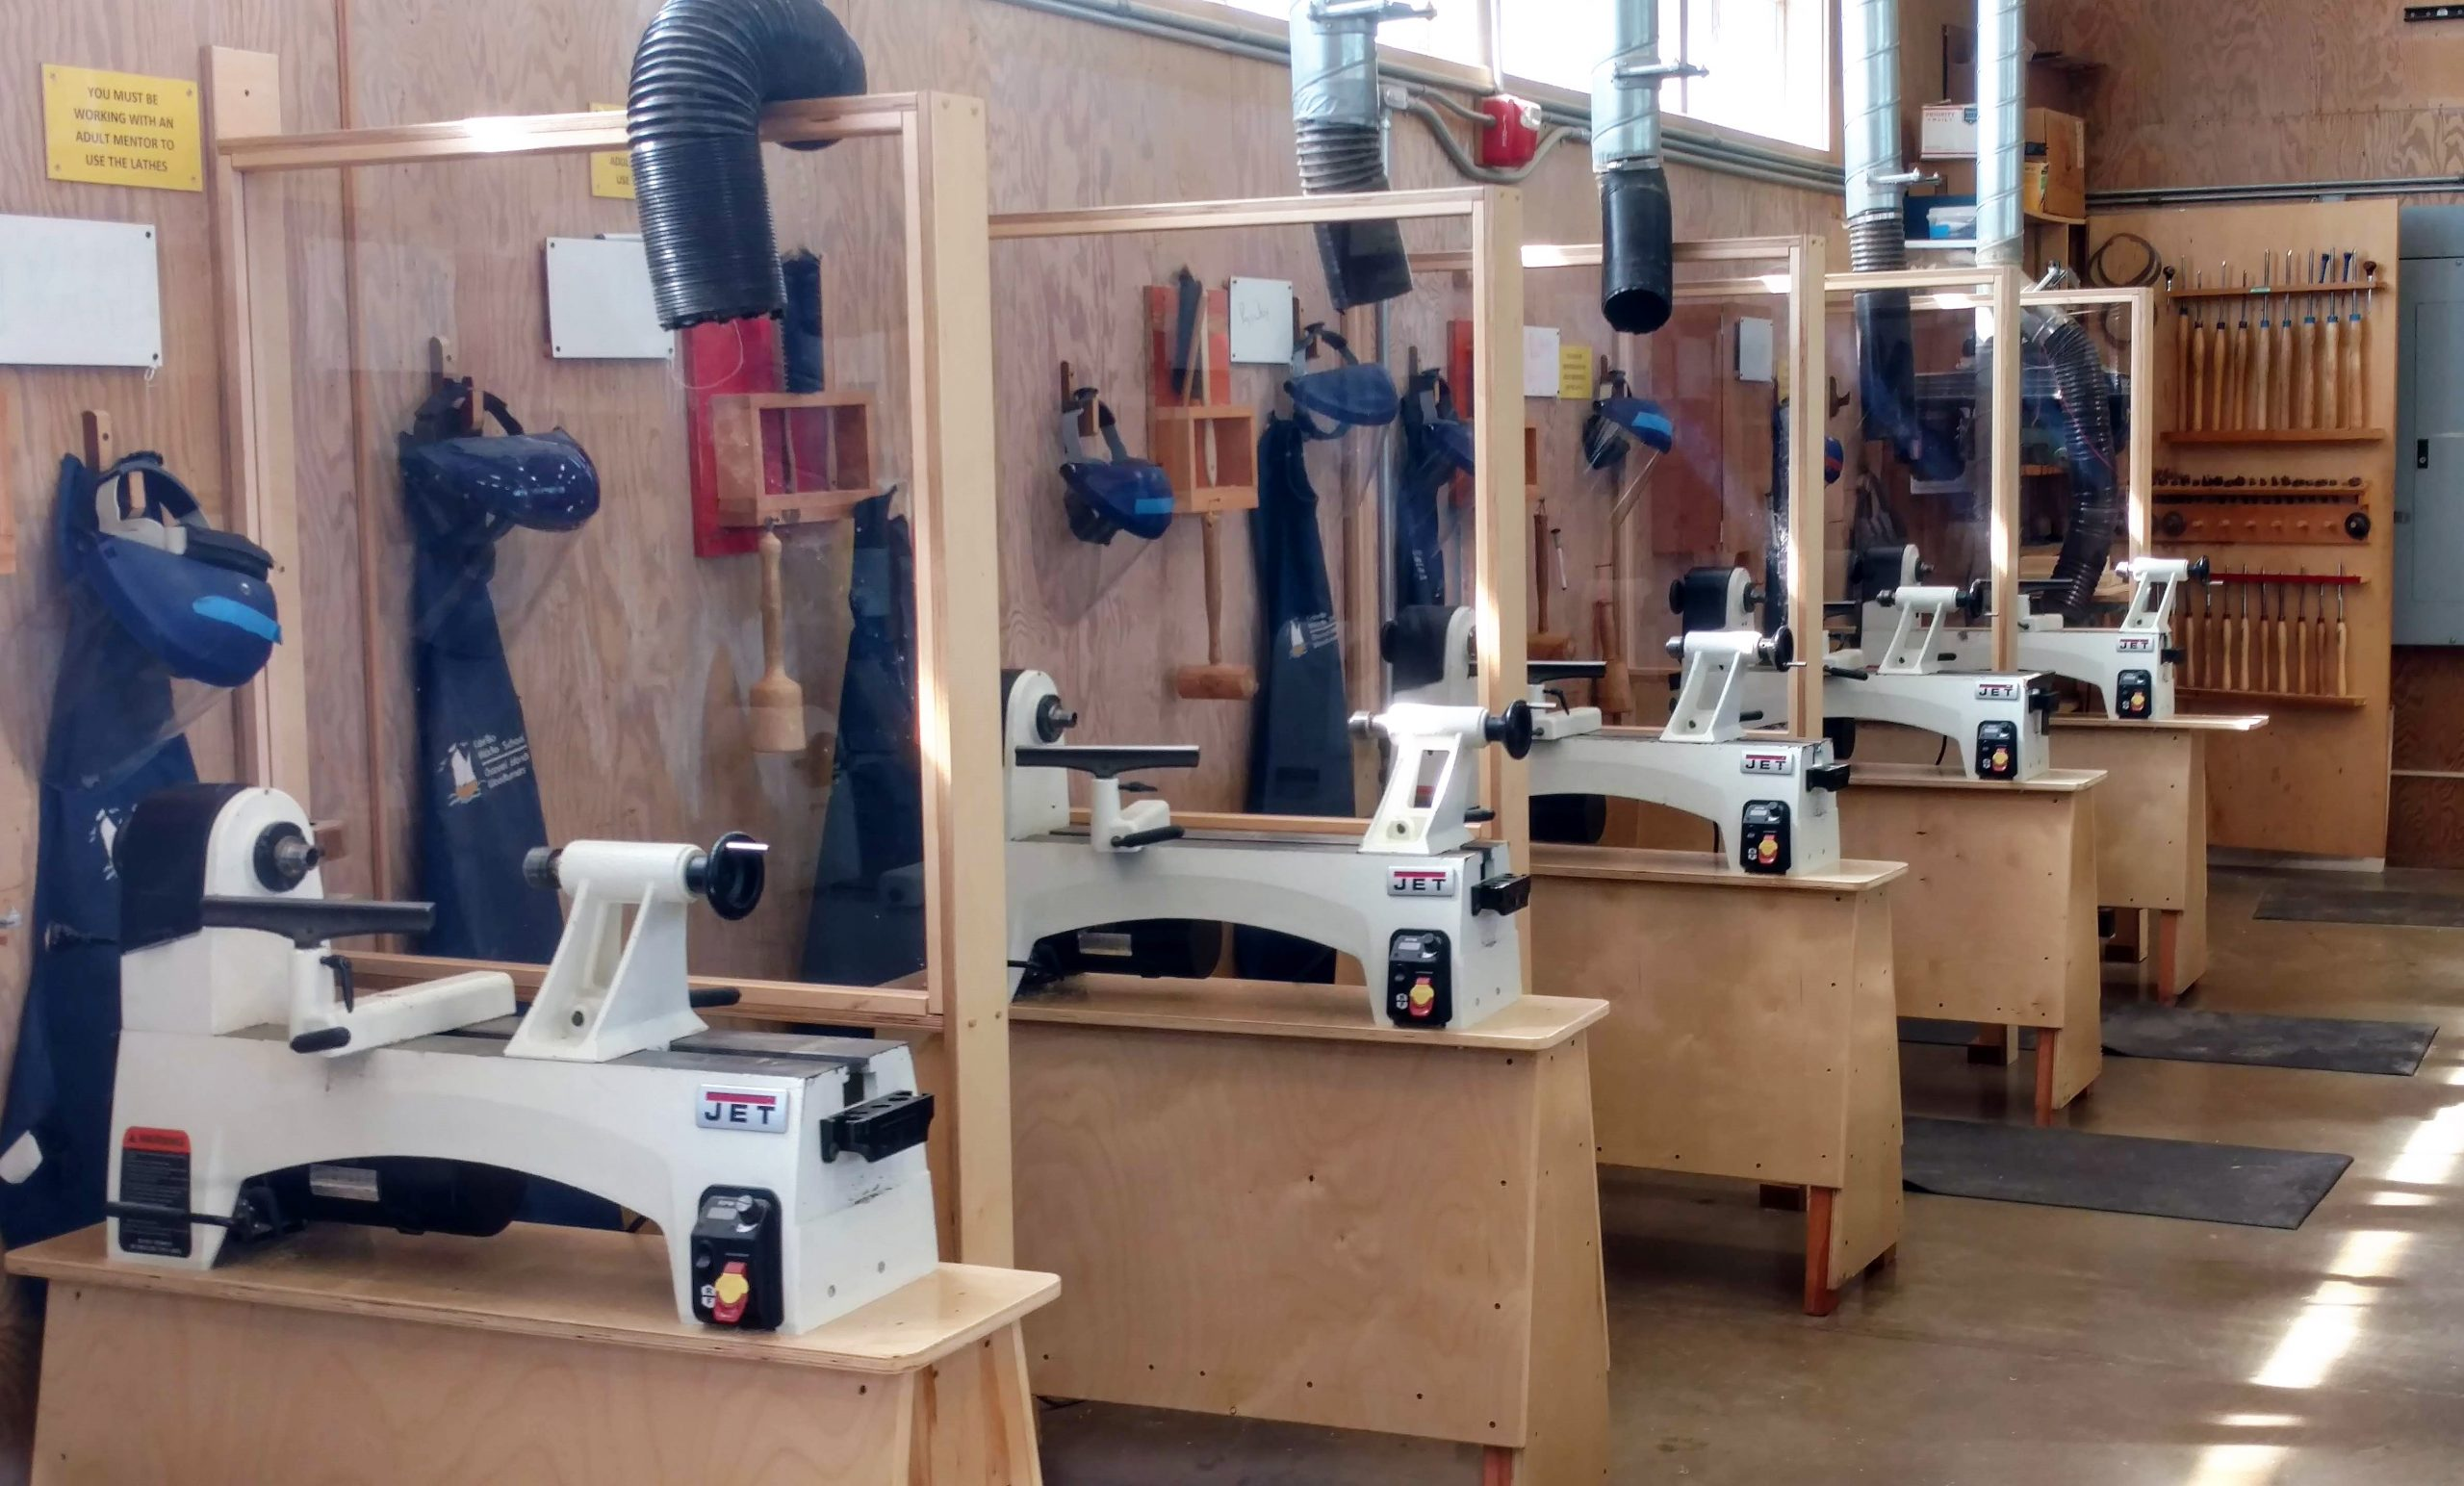 New lathes and stands in the Cabrillo woodshop provided by CIW.